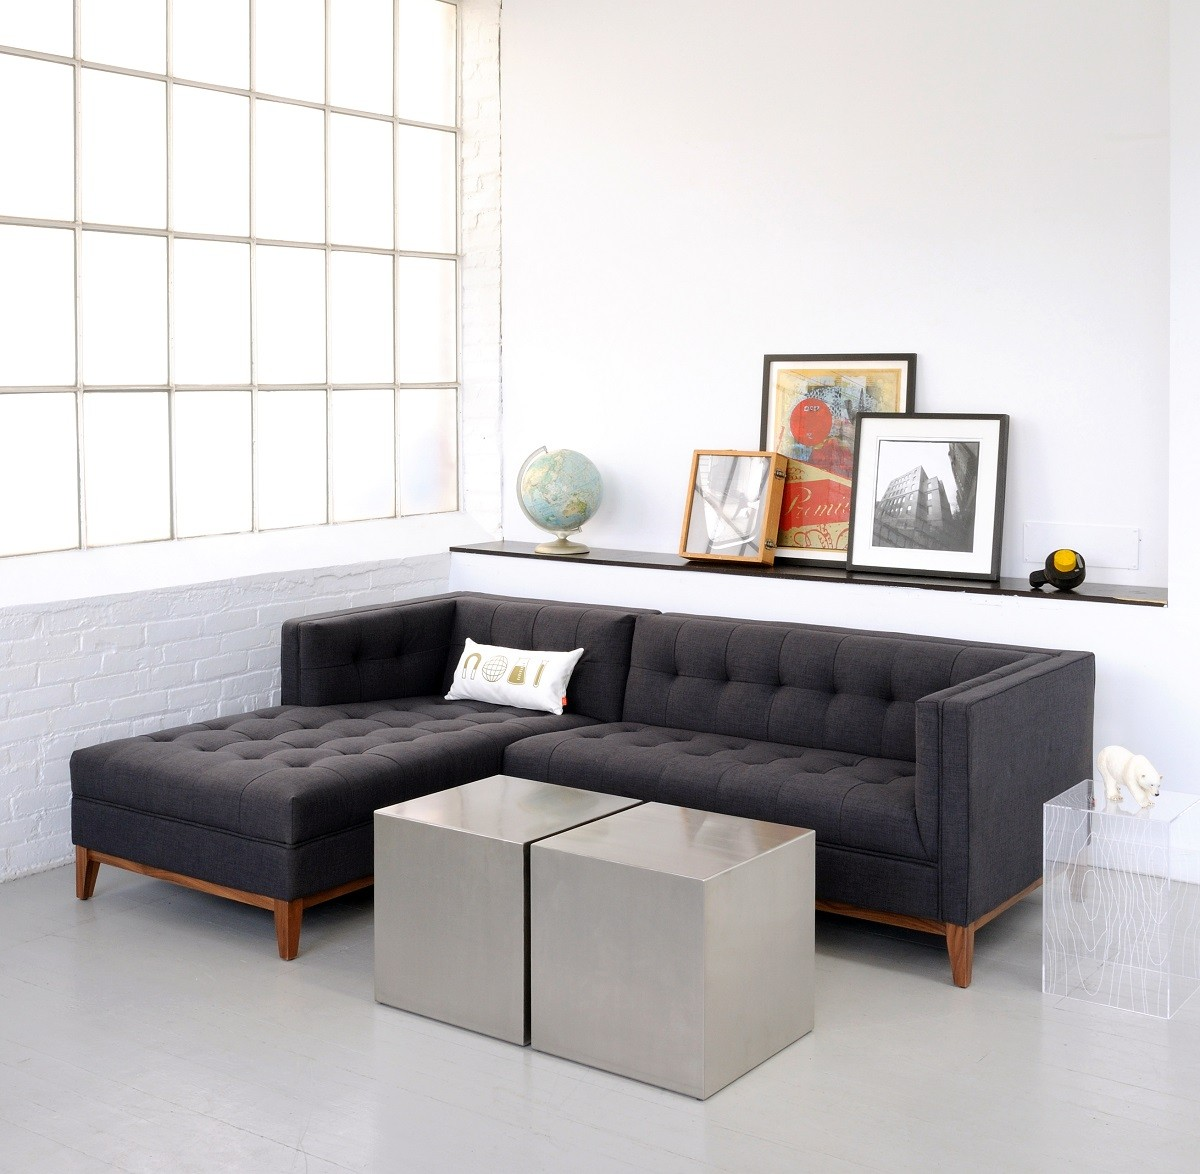 Tufted Apartment Sectional Sofas In Traditional Design With Two Boxes Of Coffee Table For Awesome Looking